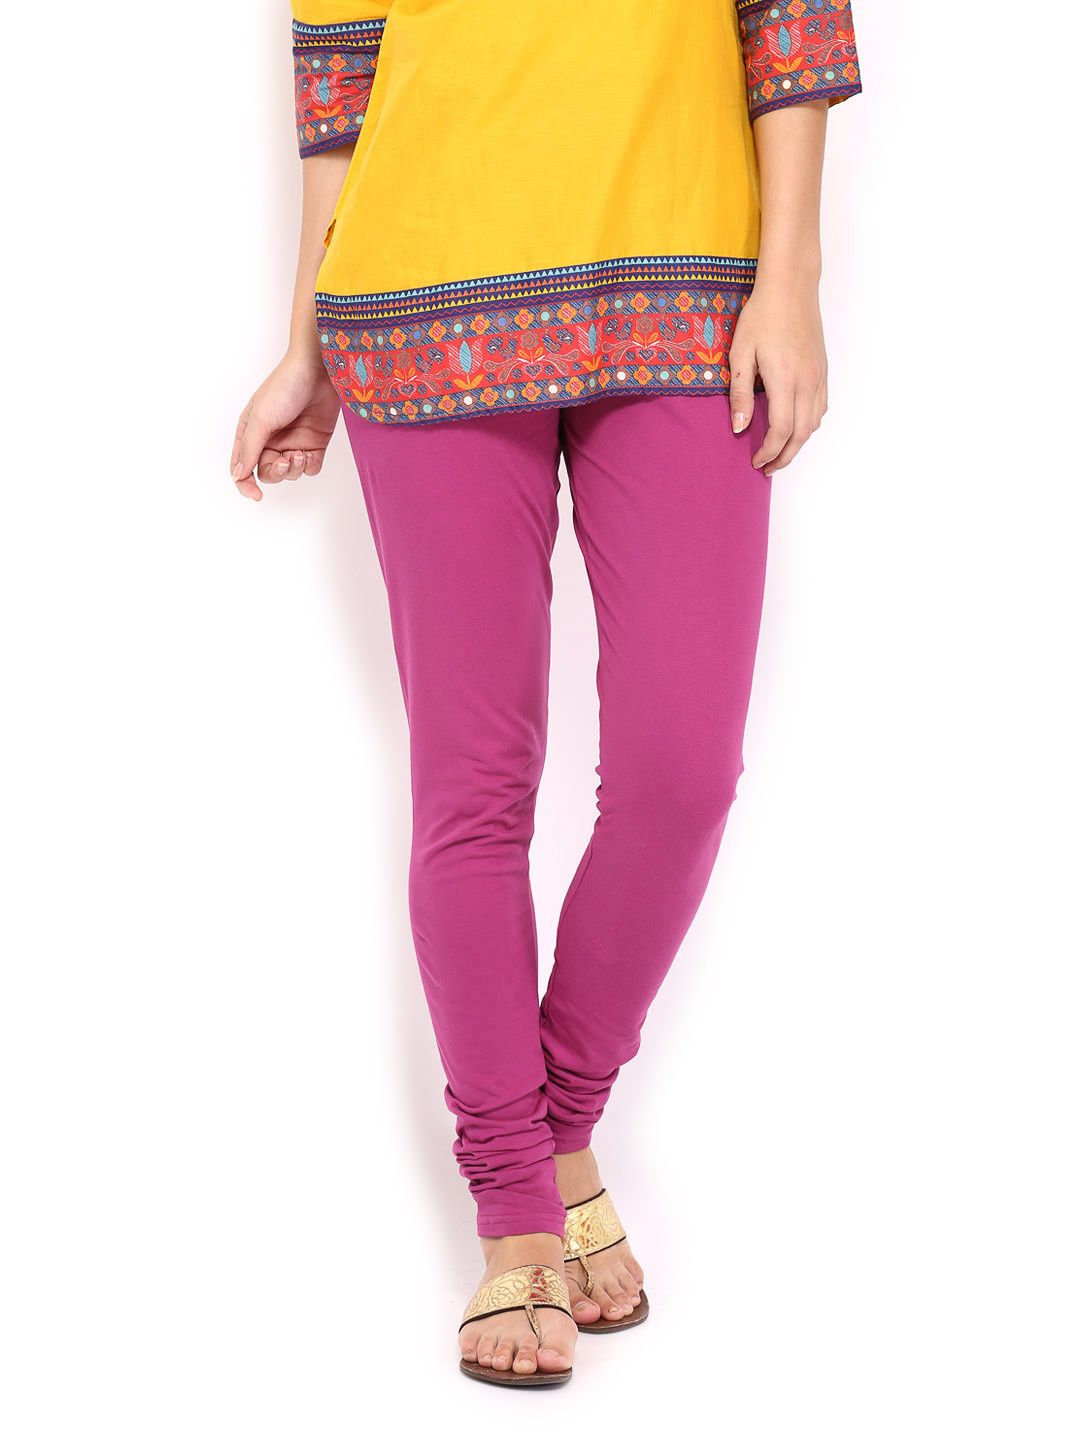 Buy BIBA Women Pink Churidar Leggings - 387 - Apparel for Women - 387318